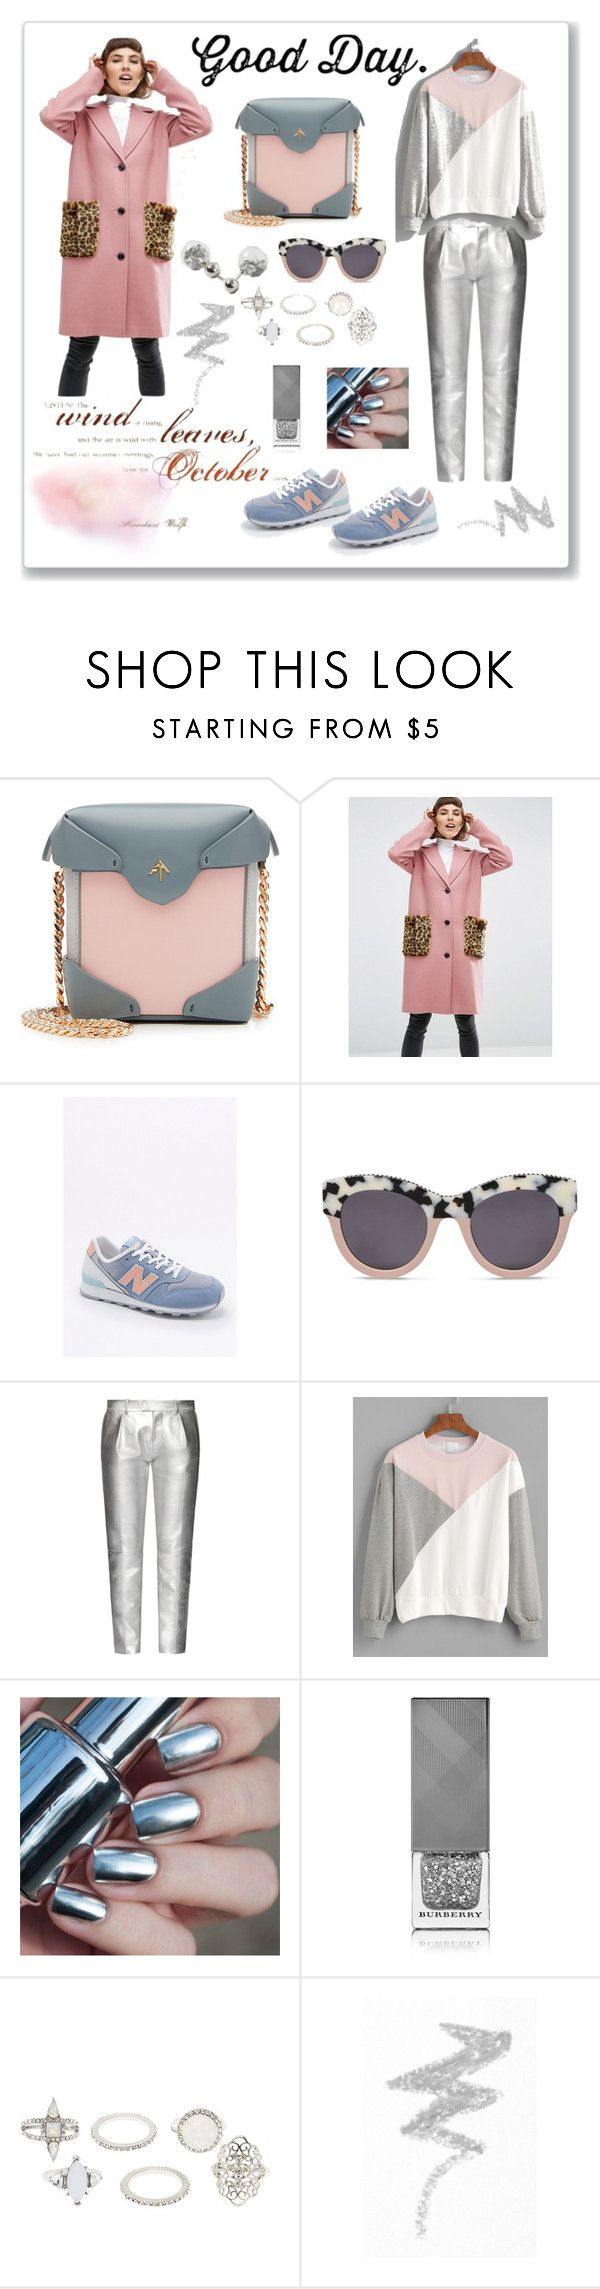 """""""Silver&arose"""" by dilka-ylibka on Polyvore featuring мода, MANU Atelier, ASOS, New Balance, STELLA McCARTNEY, Tod's, Burberry, Charlotte Russe, NYX и Dorothy Perkins"""